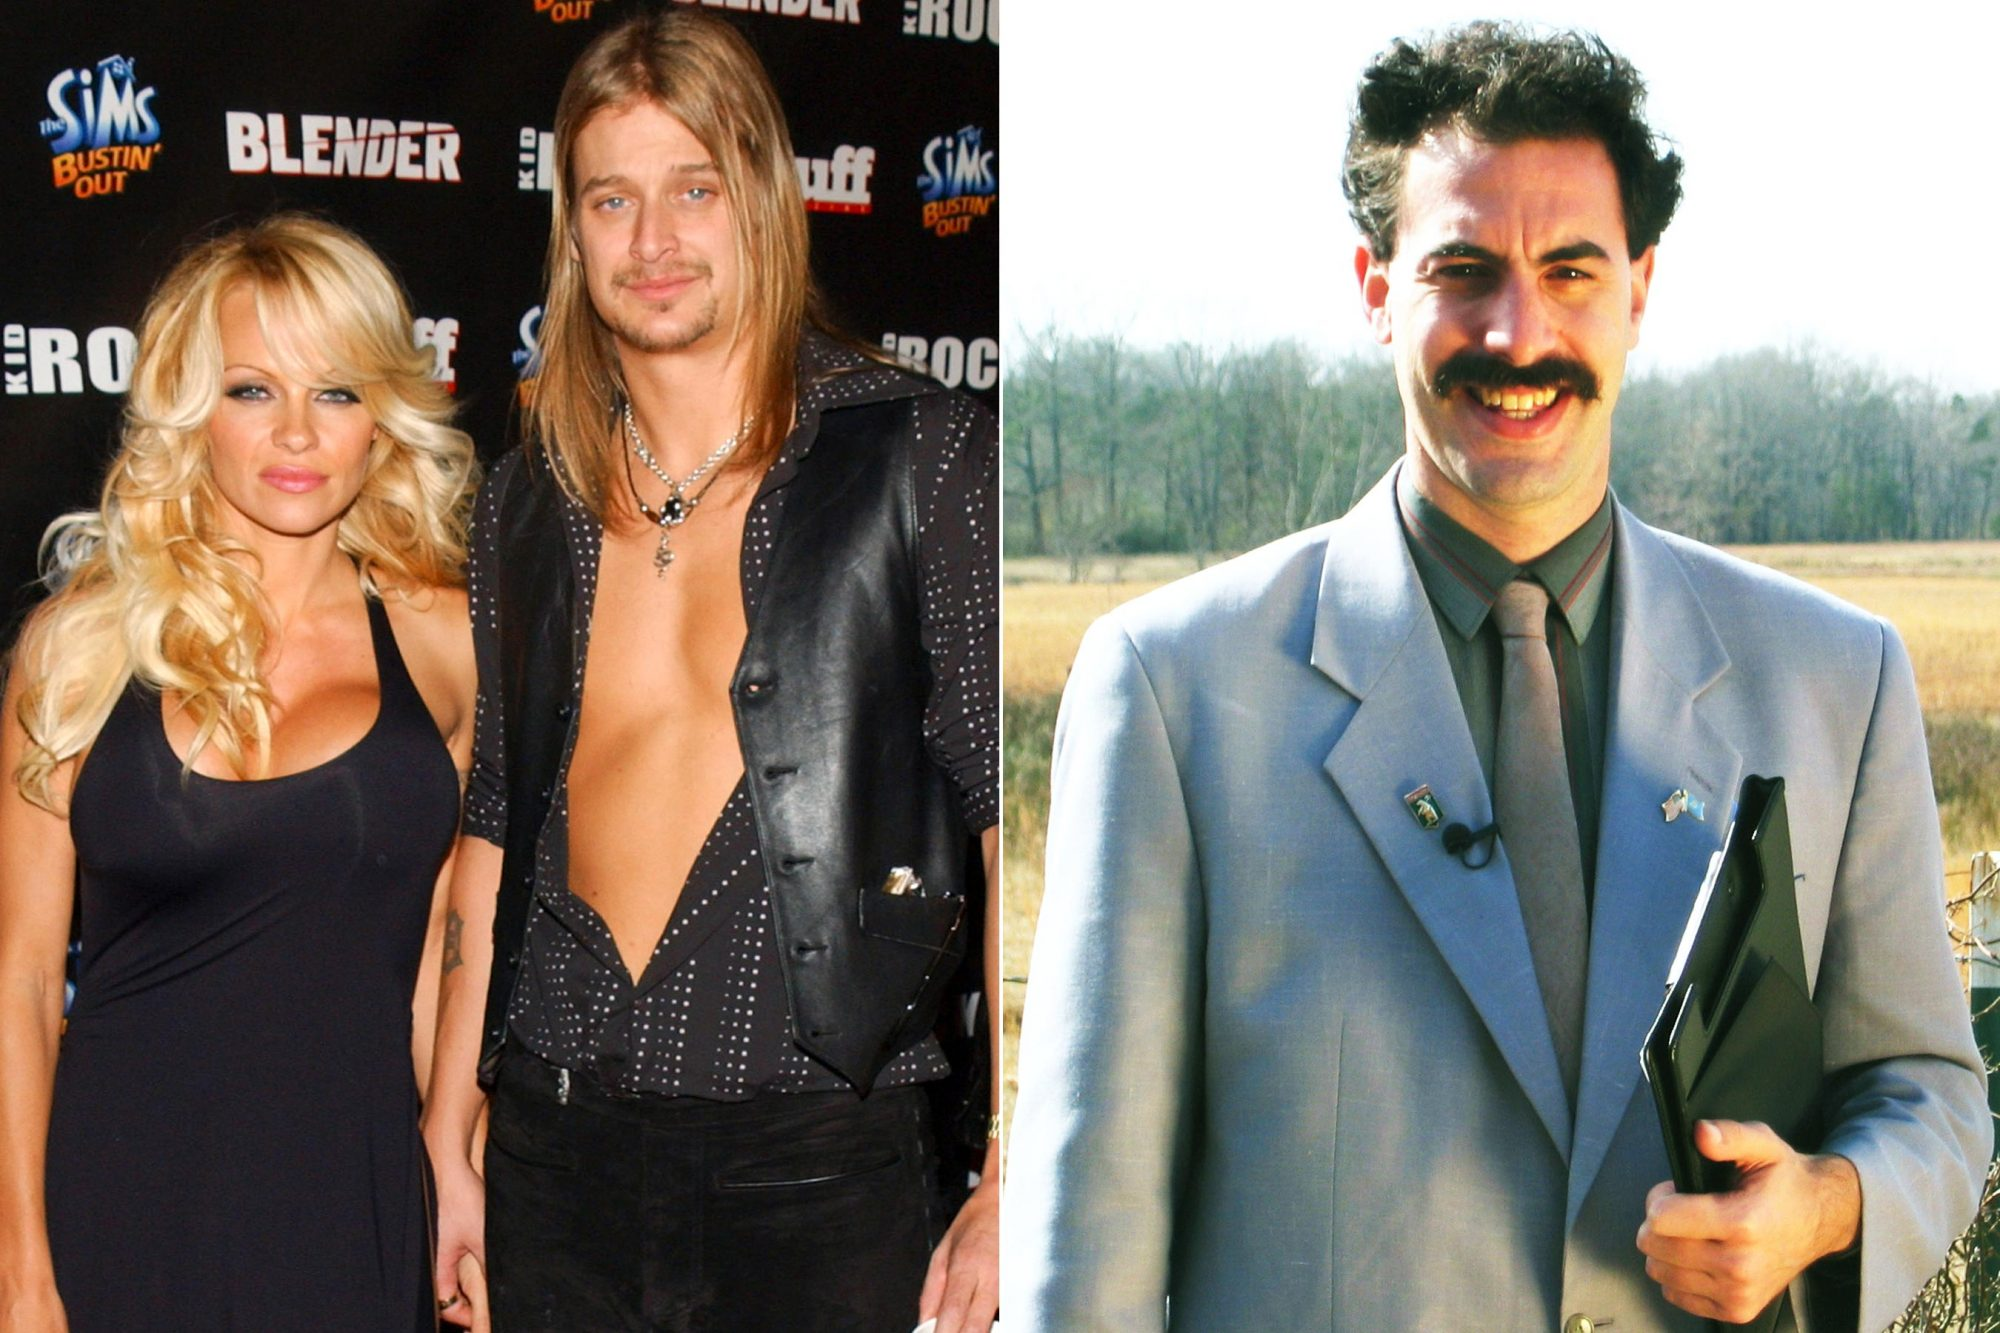 Kid Rock's After - Party For The 2003 American Music Awards- Red Carpet/Inside Pamela Anderson and Kid Rock (Photo by Jean-Paul Aussenard/WireImage) DA ALI G SHOW, Sacha Baron Cohen (as Borat), 2003-, photo: © HBO / Courtesy: Everett Collection